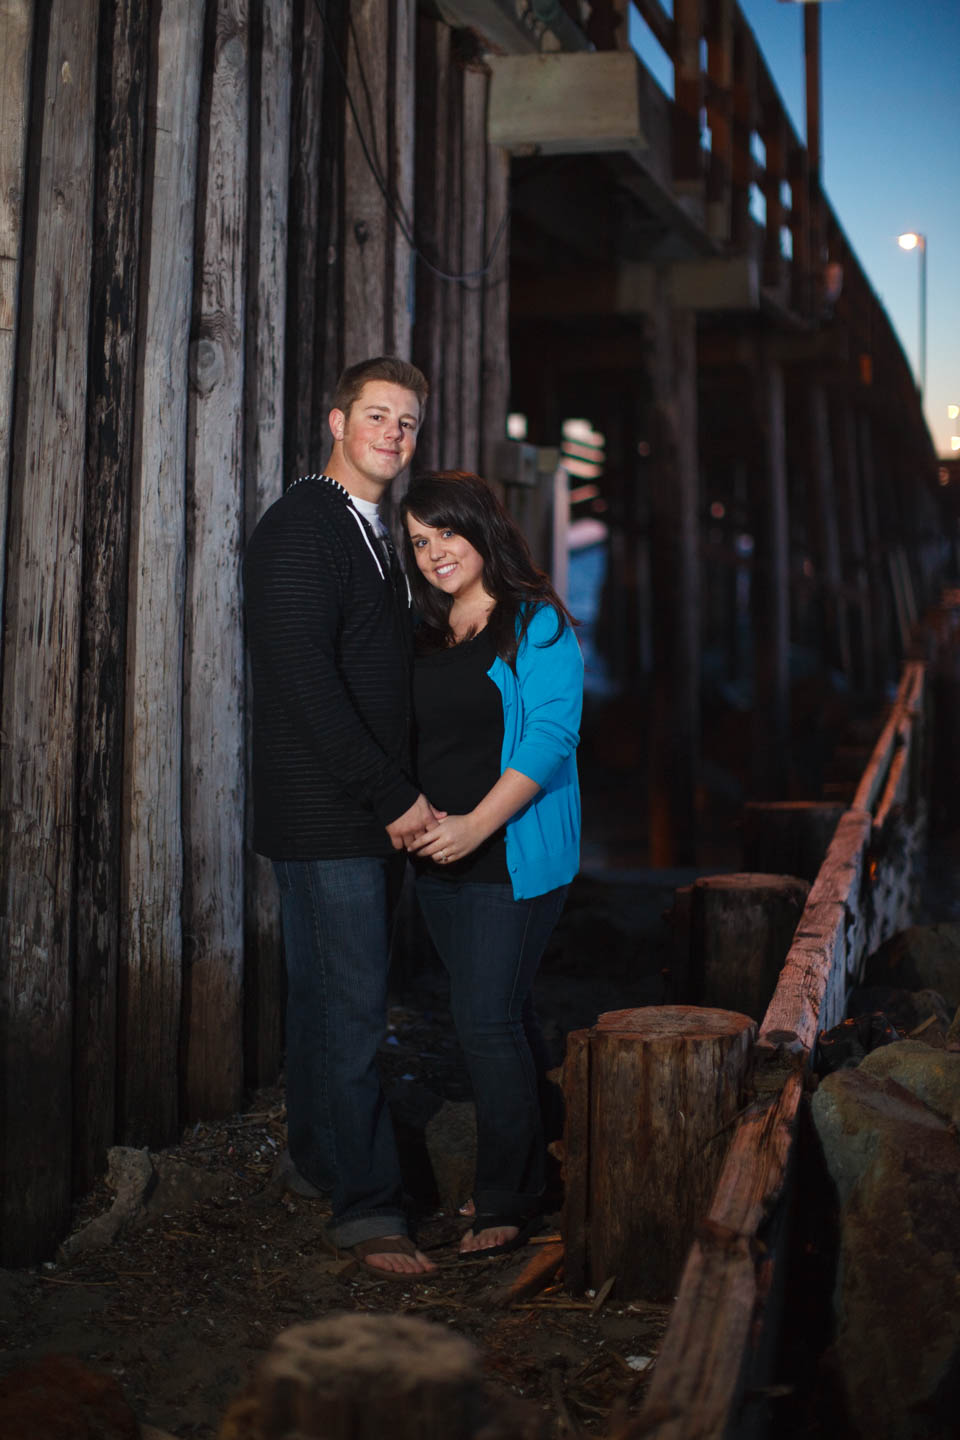 Engagement photo shoot by the pier in Newport Beach